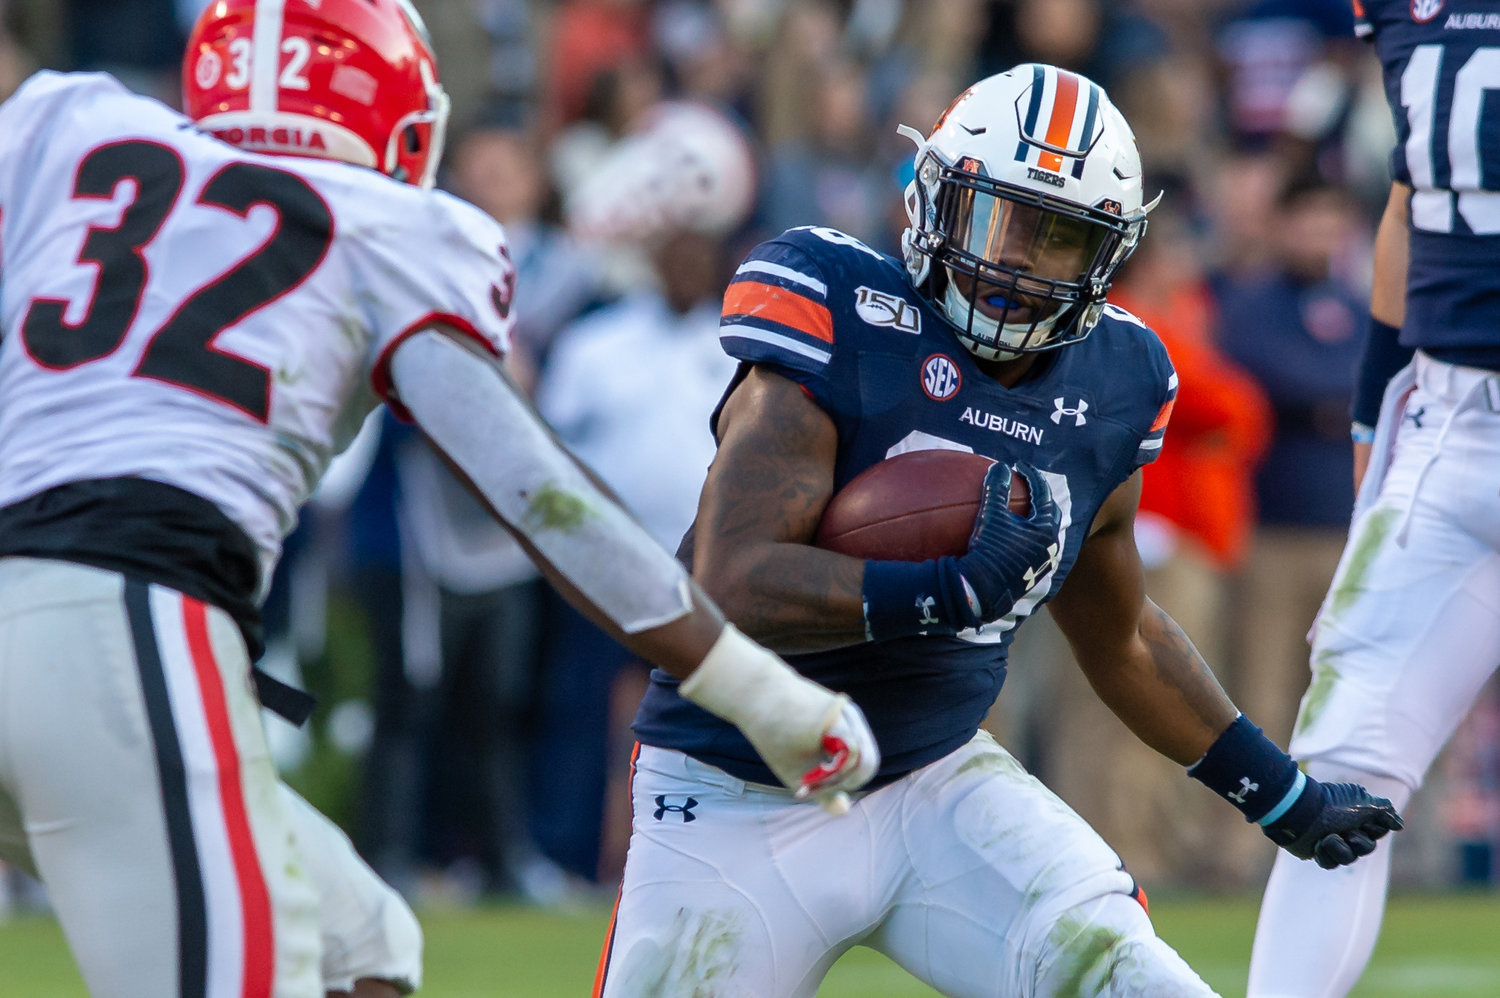 Auburn Tigers running back JaTarvious Whitlow (28) looks for running room during the first half of Saturday's game, at Jordan-Hare Stadium in Auburn,, AL. Daily Mountain Eagle -  Jeff Johnsey